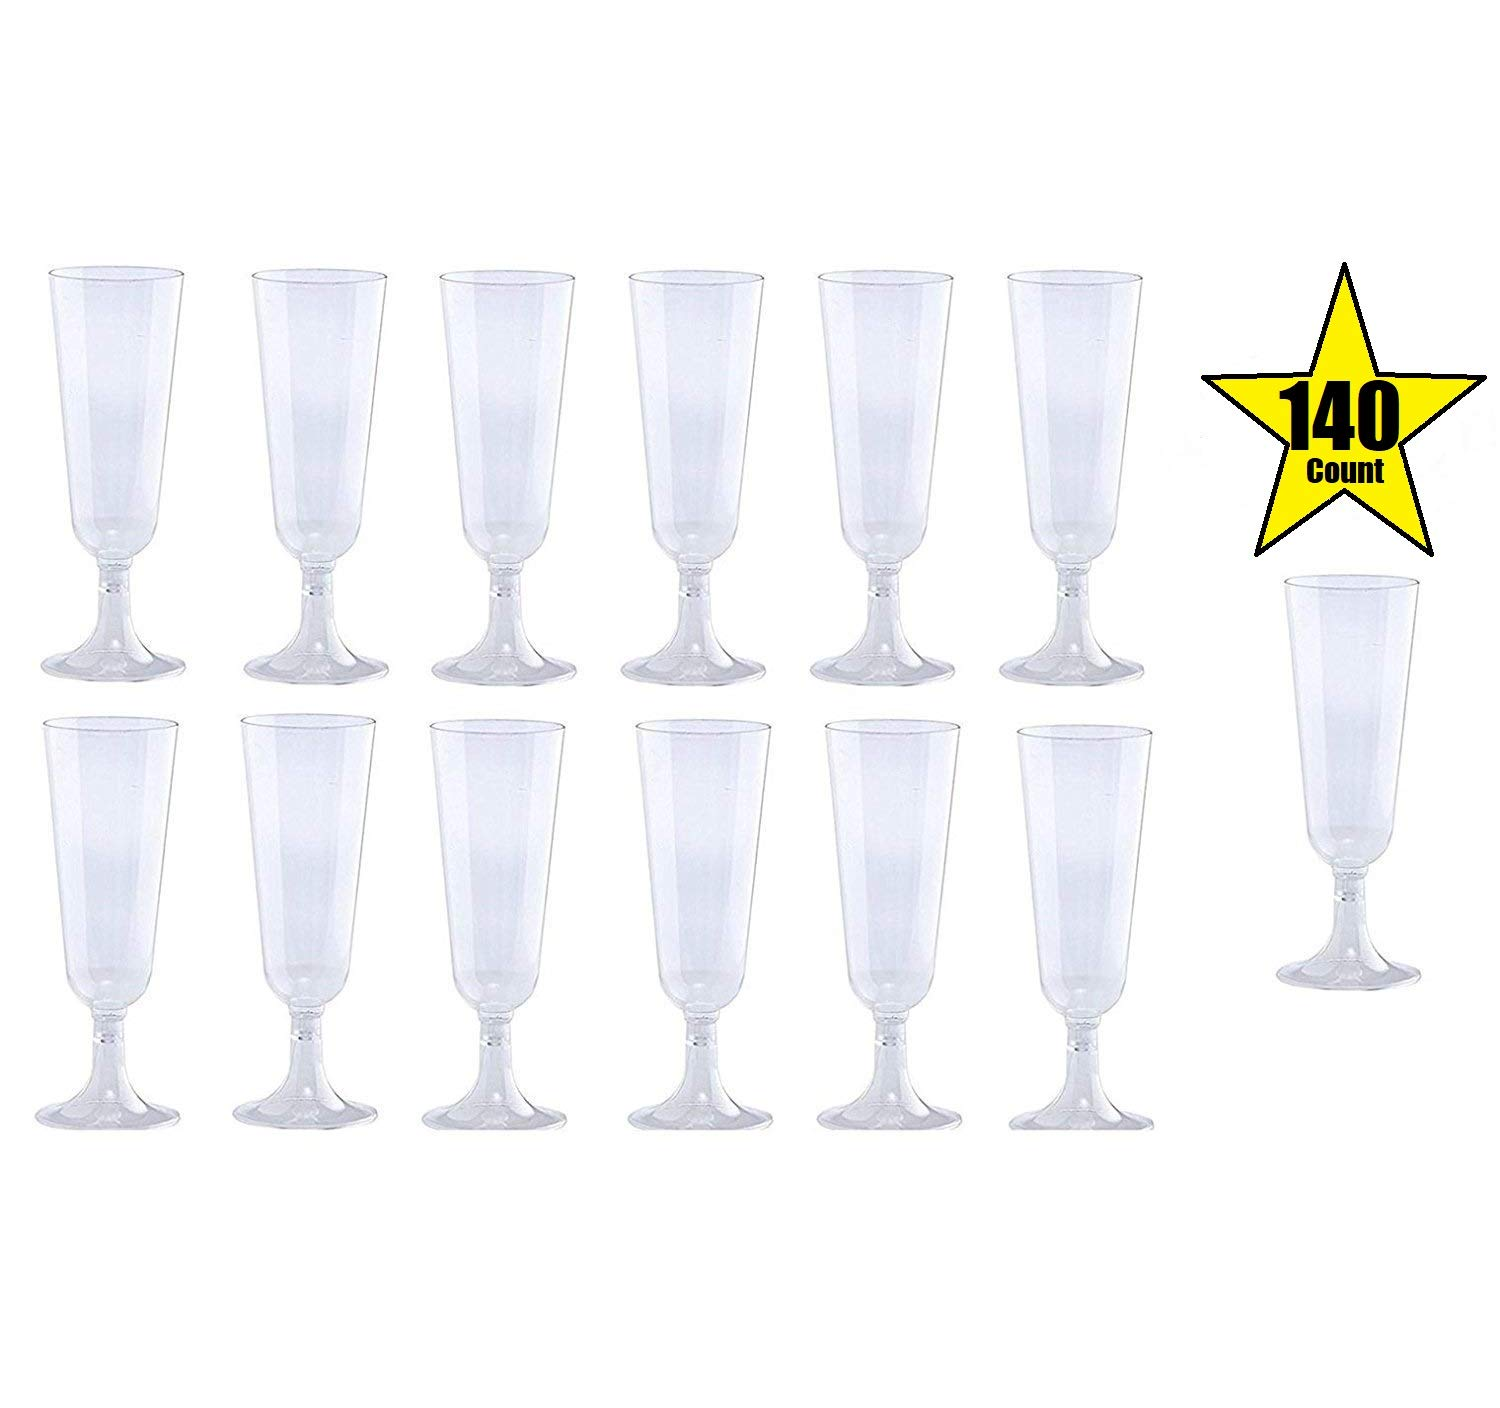 140 pc Plastic Classicware Glass Like Champagne Wedding Parties Toasting Flutes Party Cocktail Cups (Clear) by Oojami